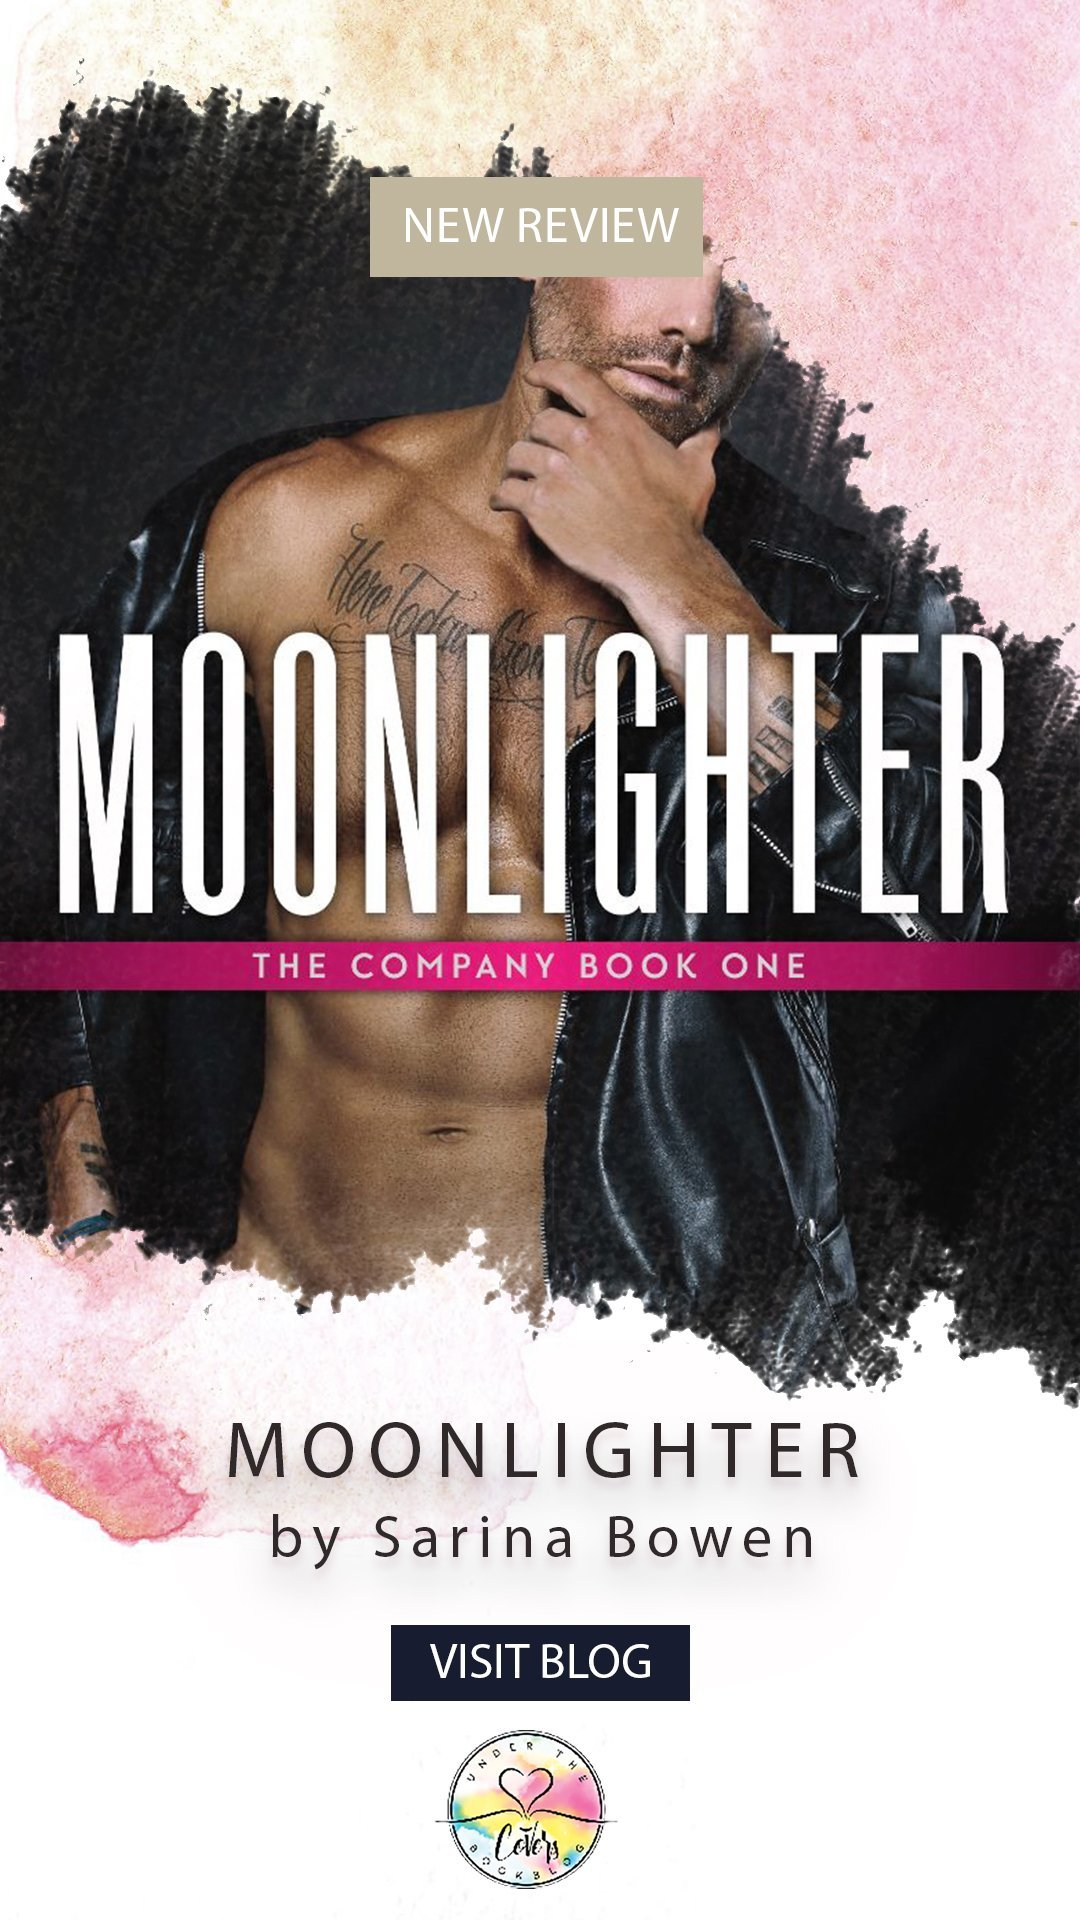 ARC Review: Moonlighter by Sarina Bowen